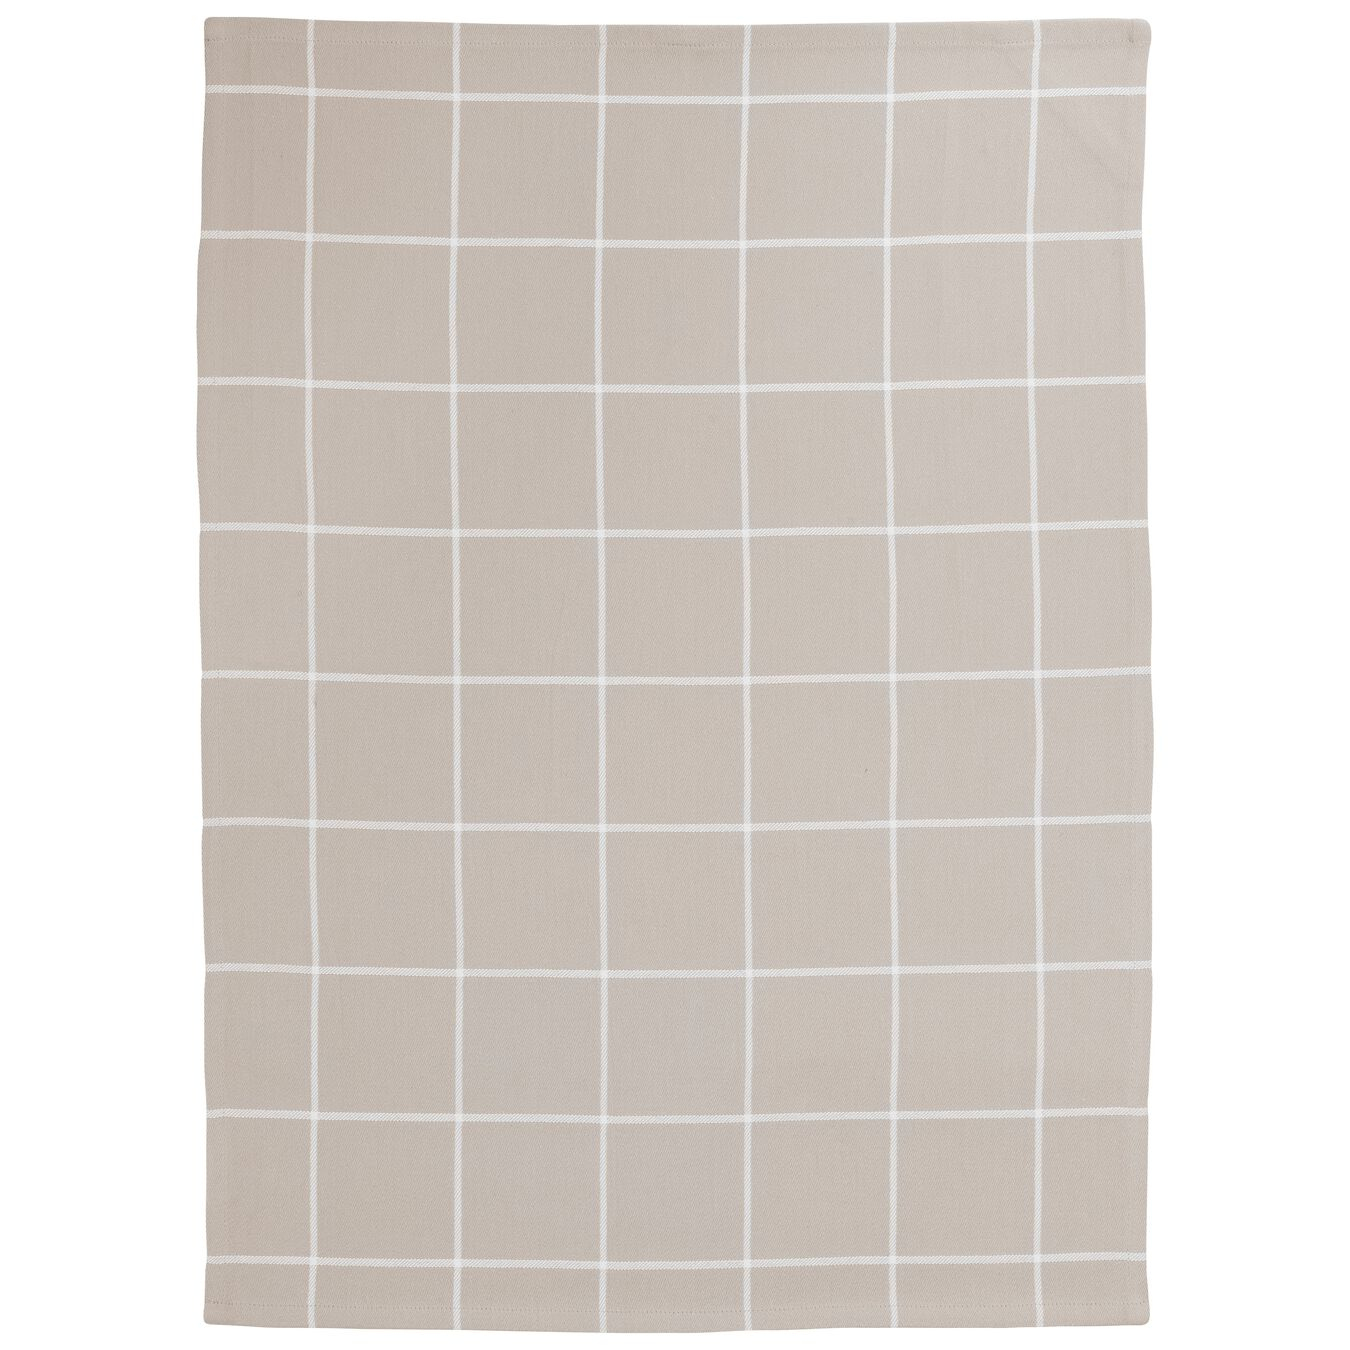 2 Piece 2 Piece Kitchen towel set checkered, taupe,,large 4